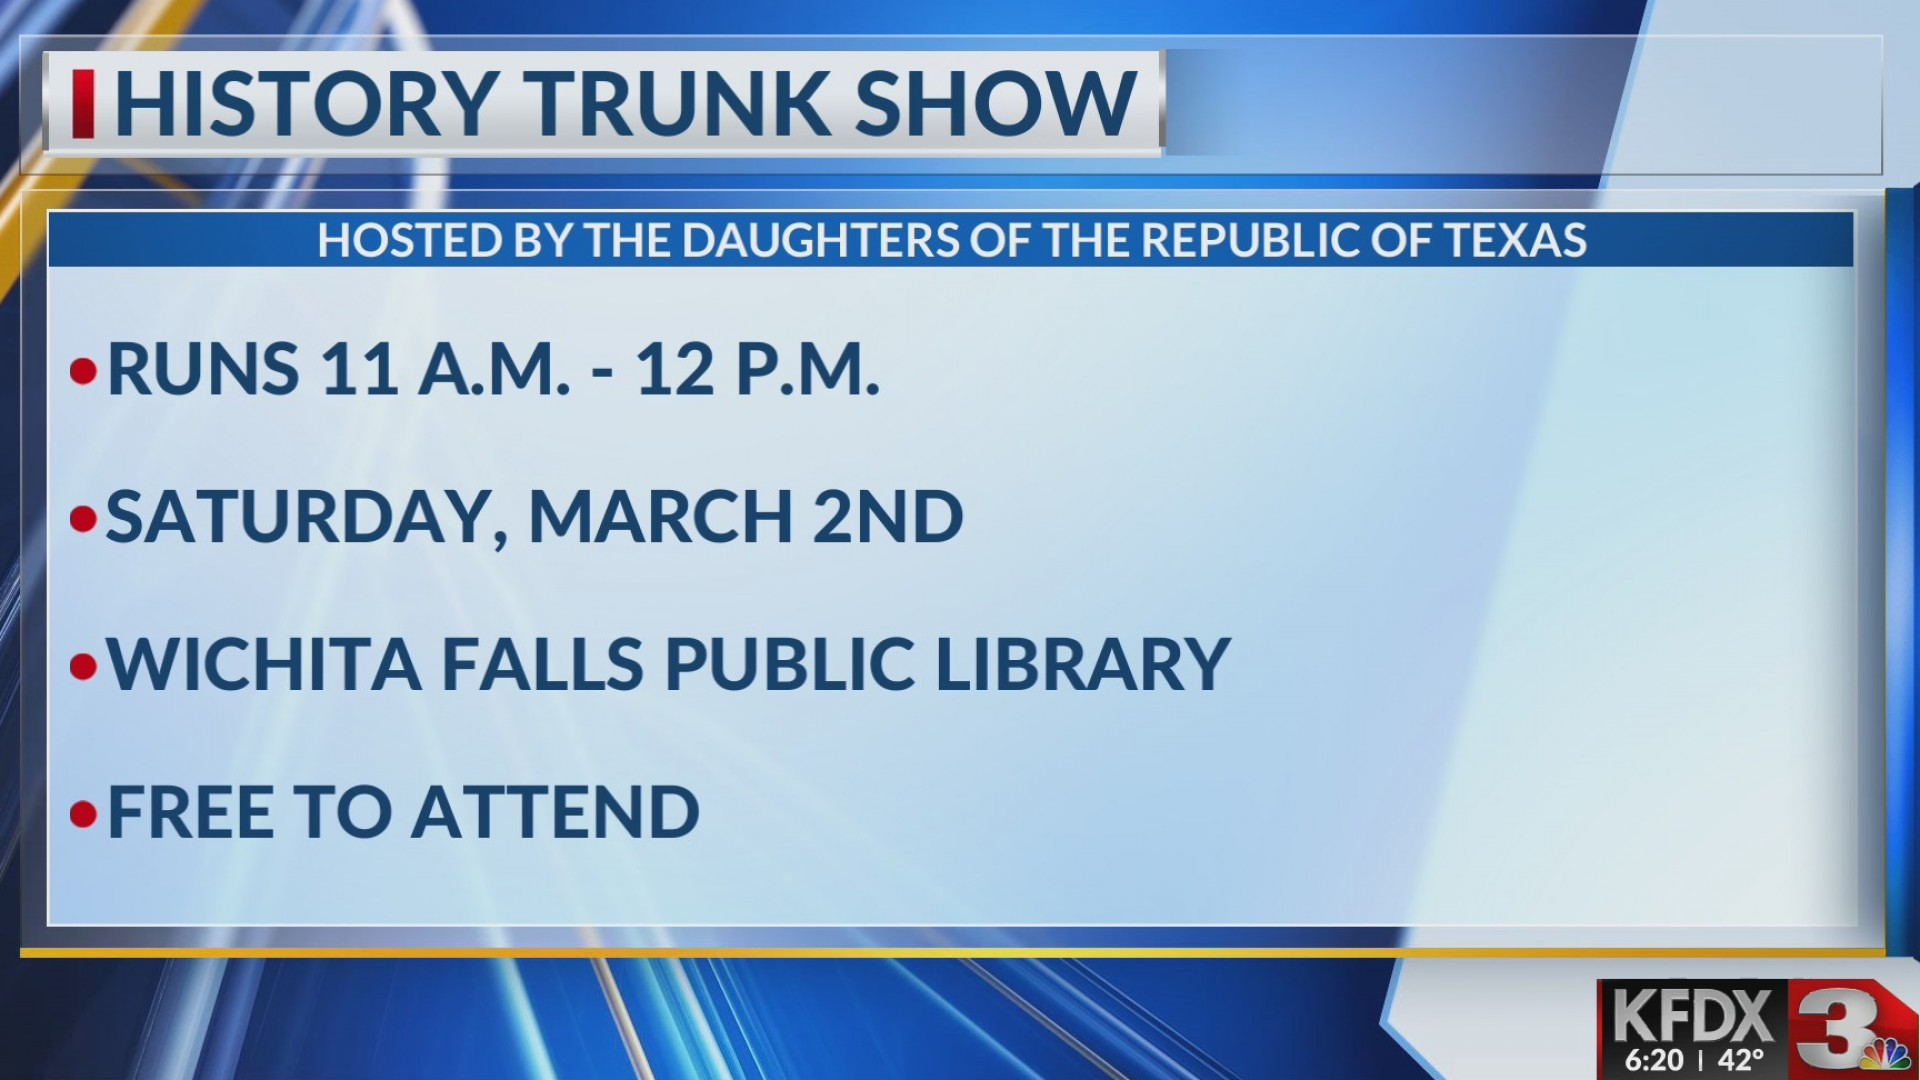 History_Trunk_Show_1_20190222124826